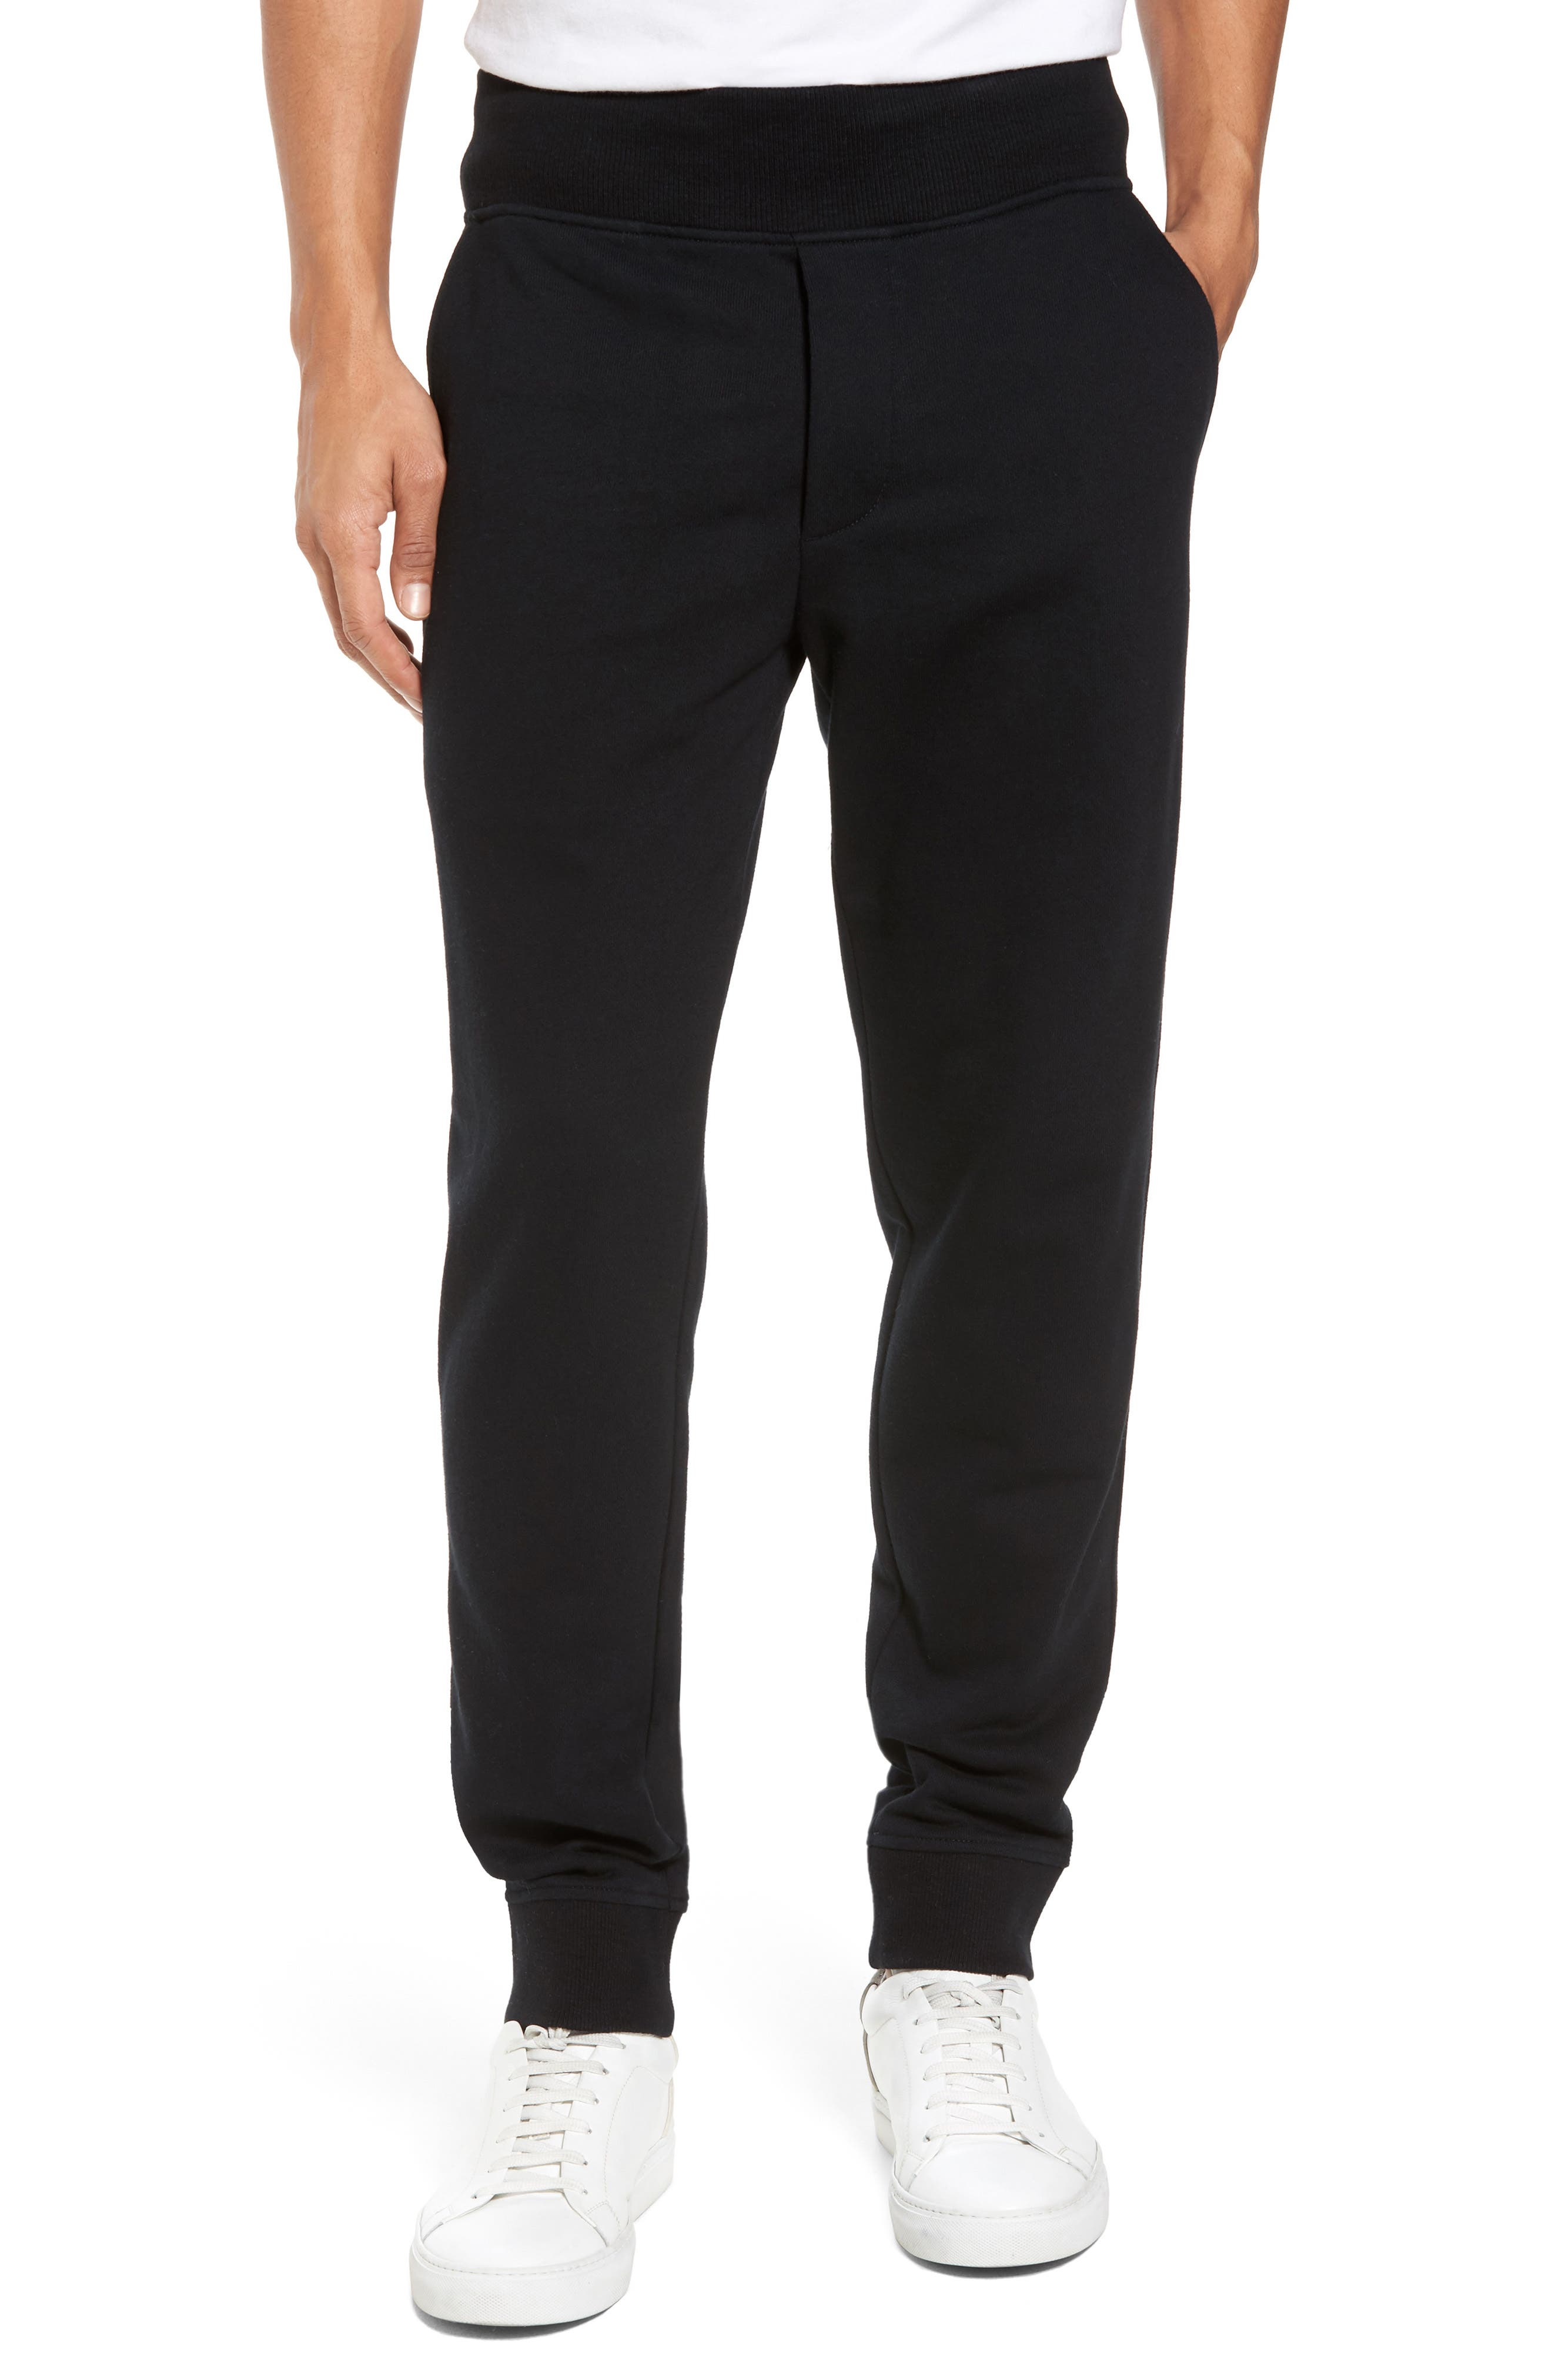 French Terry Regular Fit Sweatpants,                         Main,                         color, 001